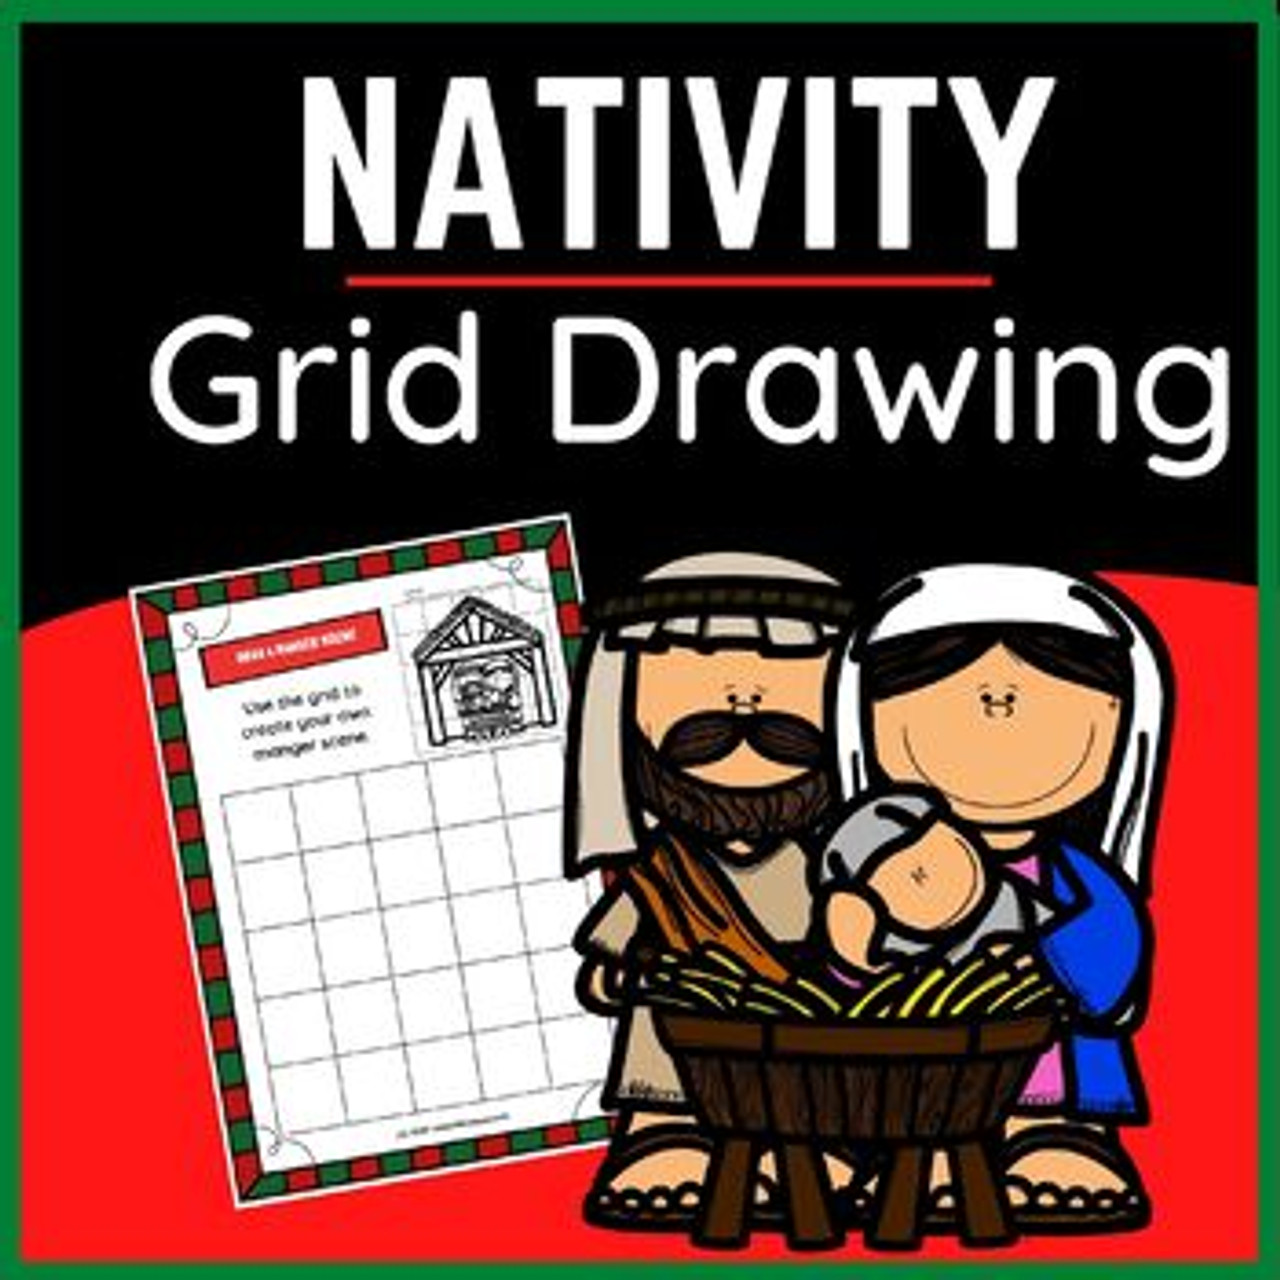 Draw Your Own Nativity Scene for Christmas